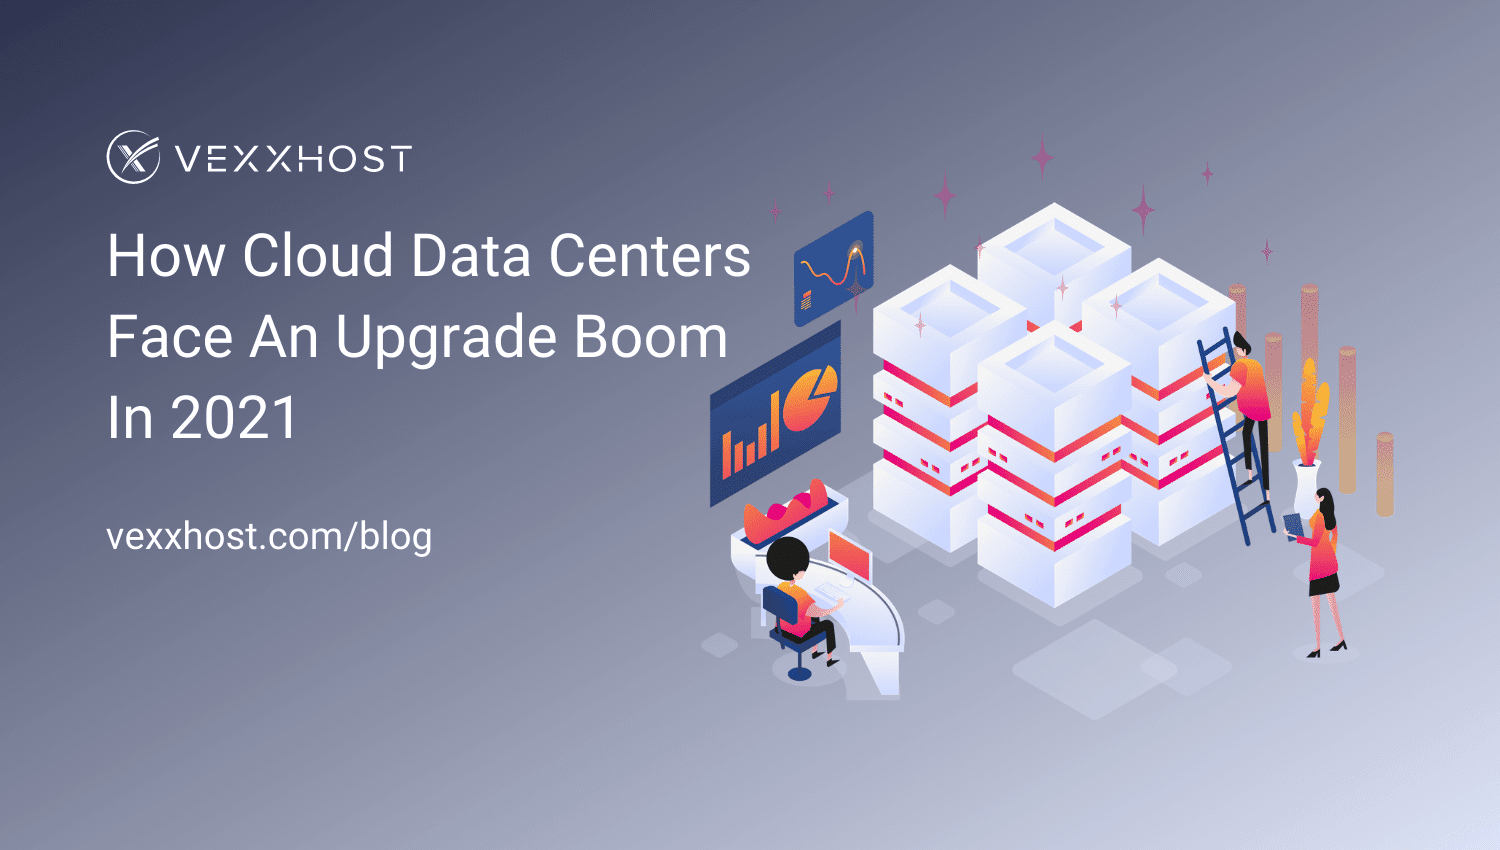 How Cloud Data Centers Face an Upgrade Boom in 2021